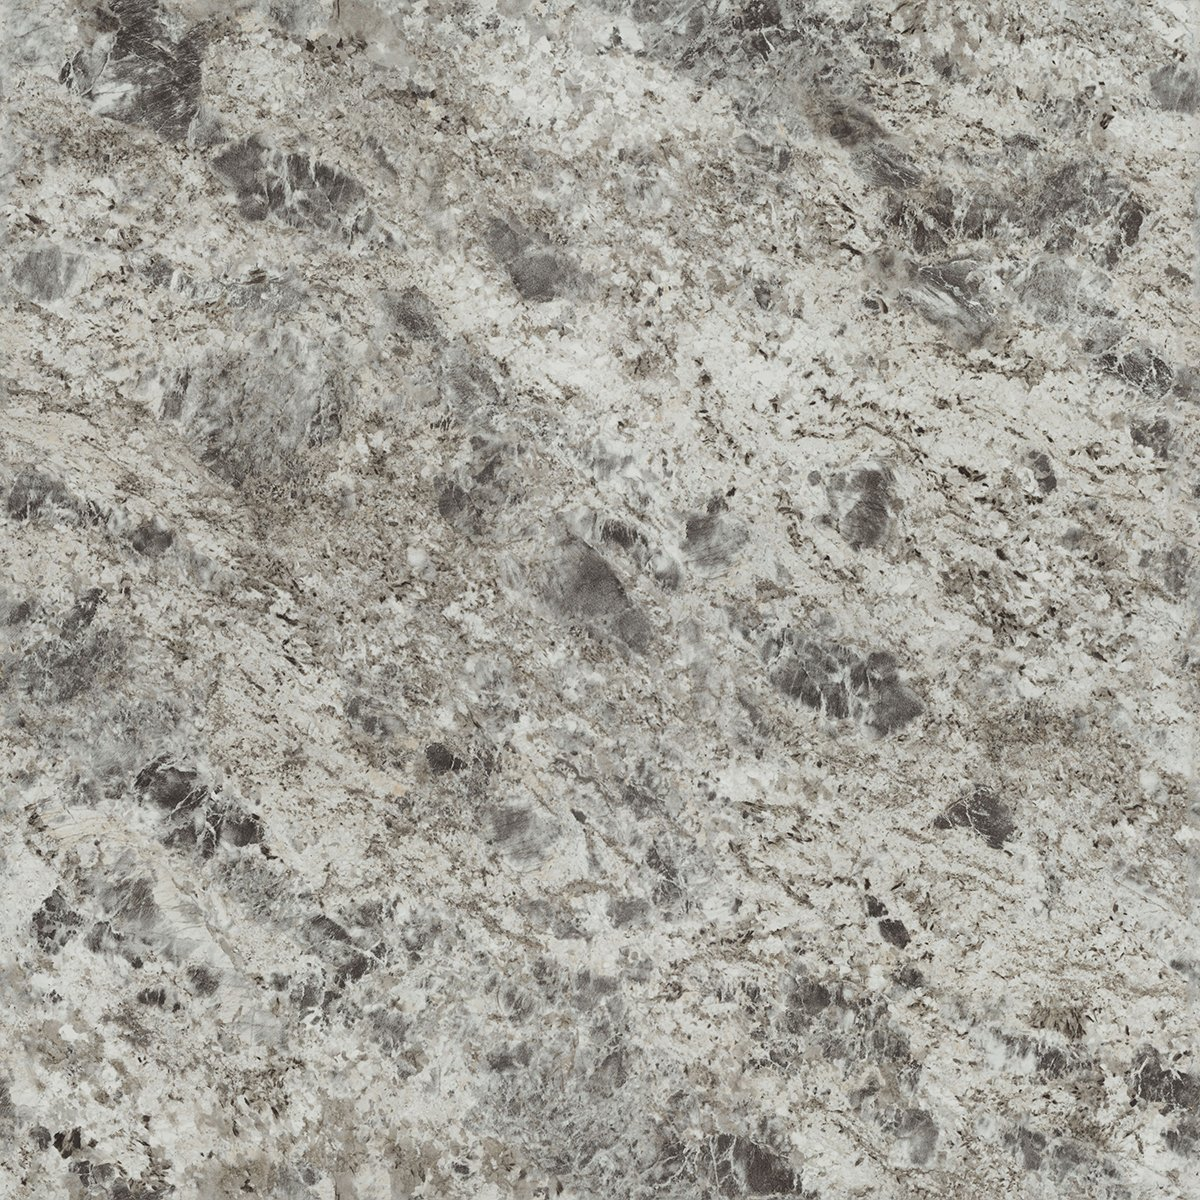 Formica Brand Laminate 093051243512000 Silver Flower Granite Laminate, Silver Flower Granite Artisan